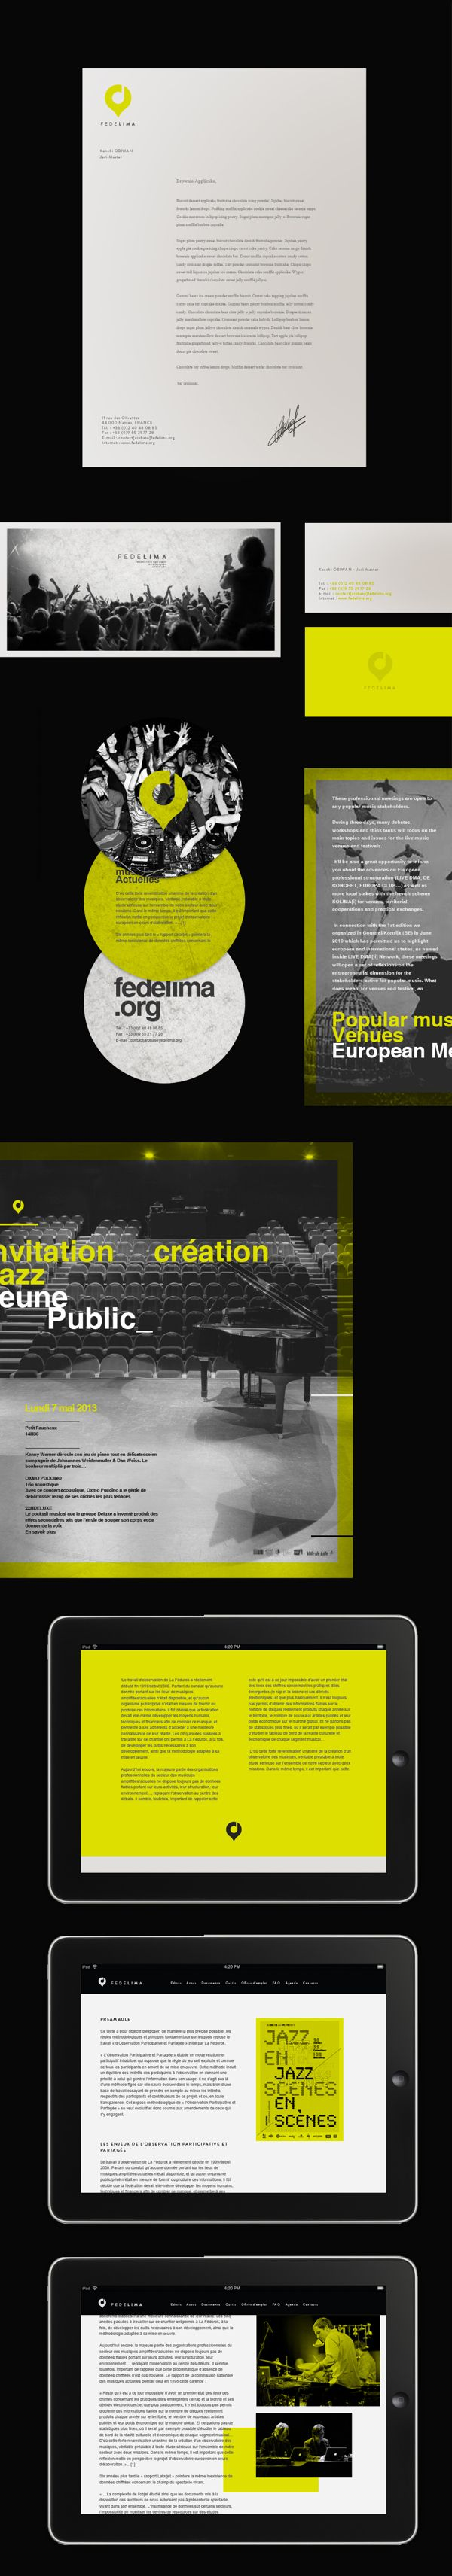 Branding | Fedelima Concept by Thomas Le Corre, via Behance